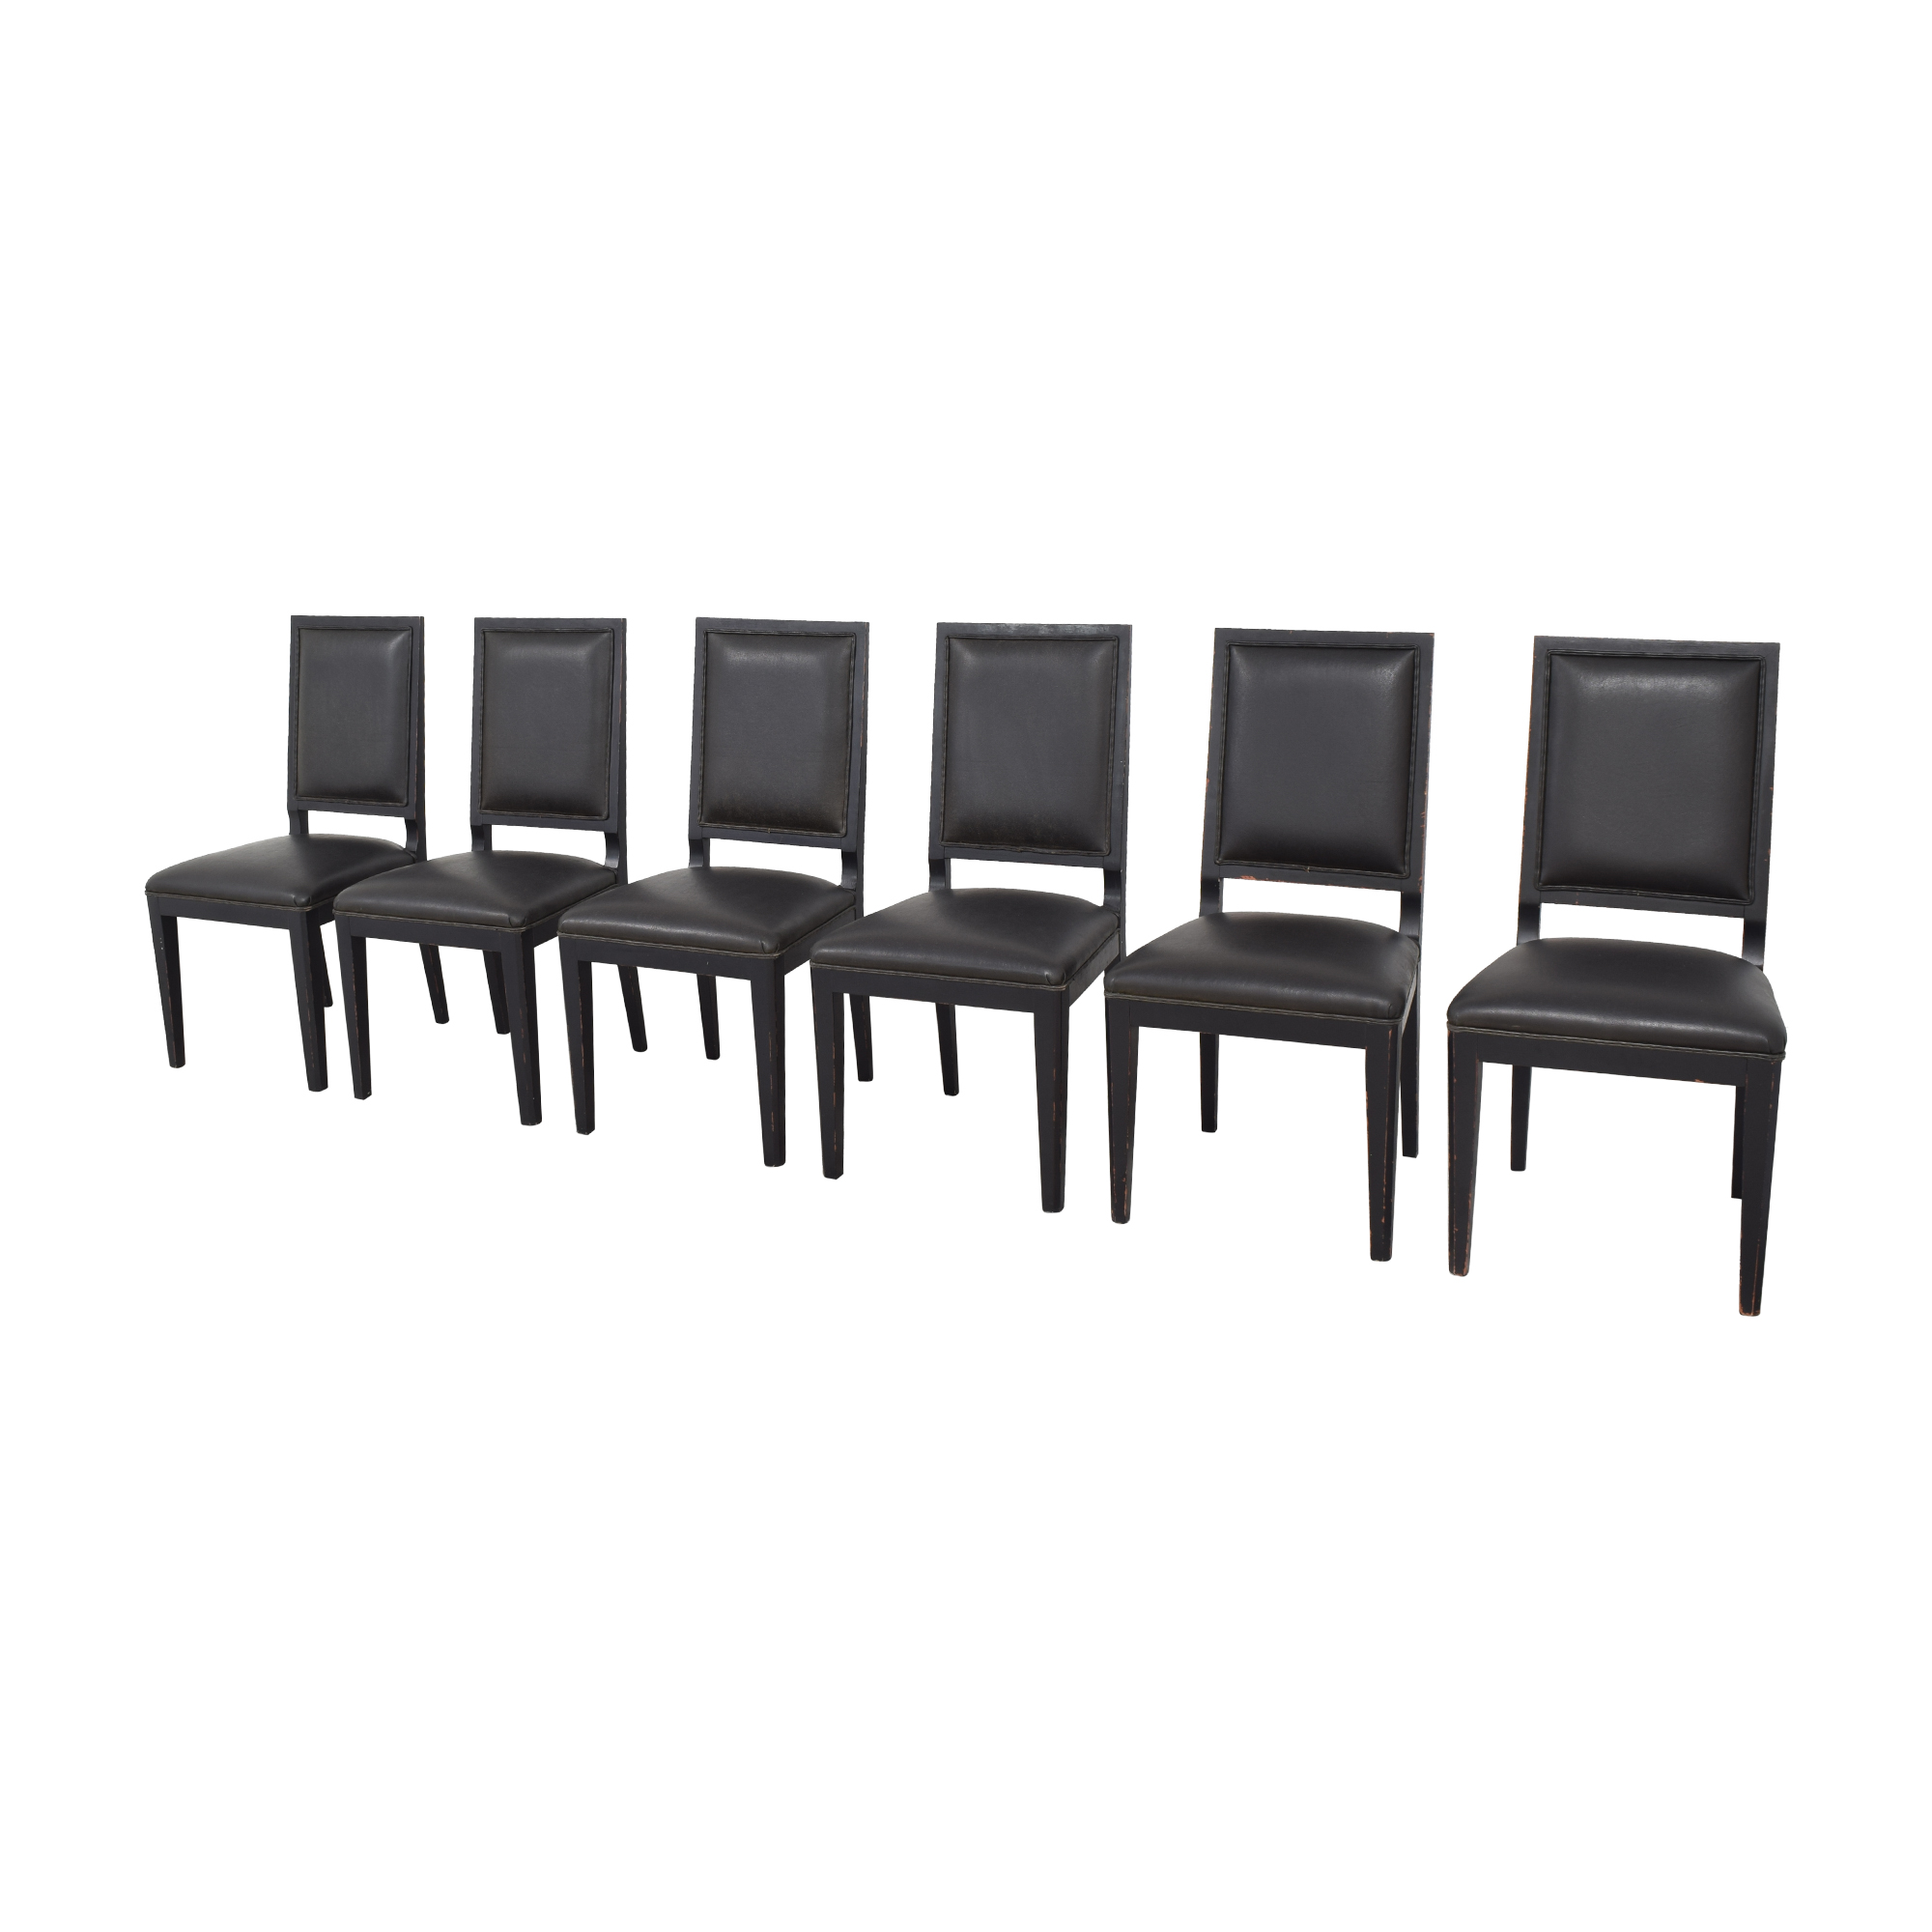 shop Crate & Barrel Sonata Dining Chairs Crate & Barrel Chairs